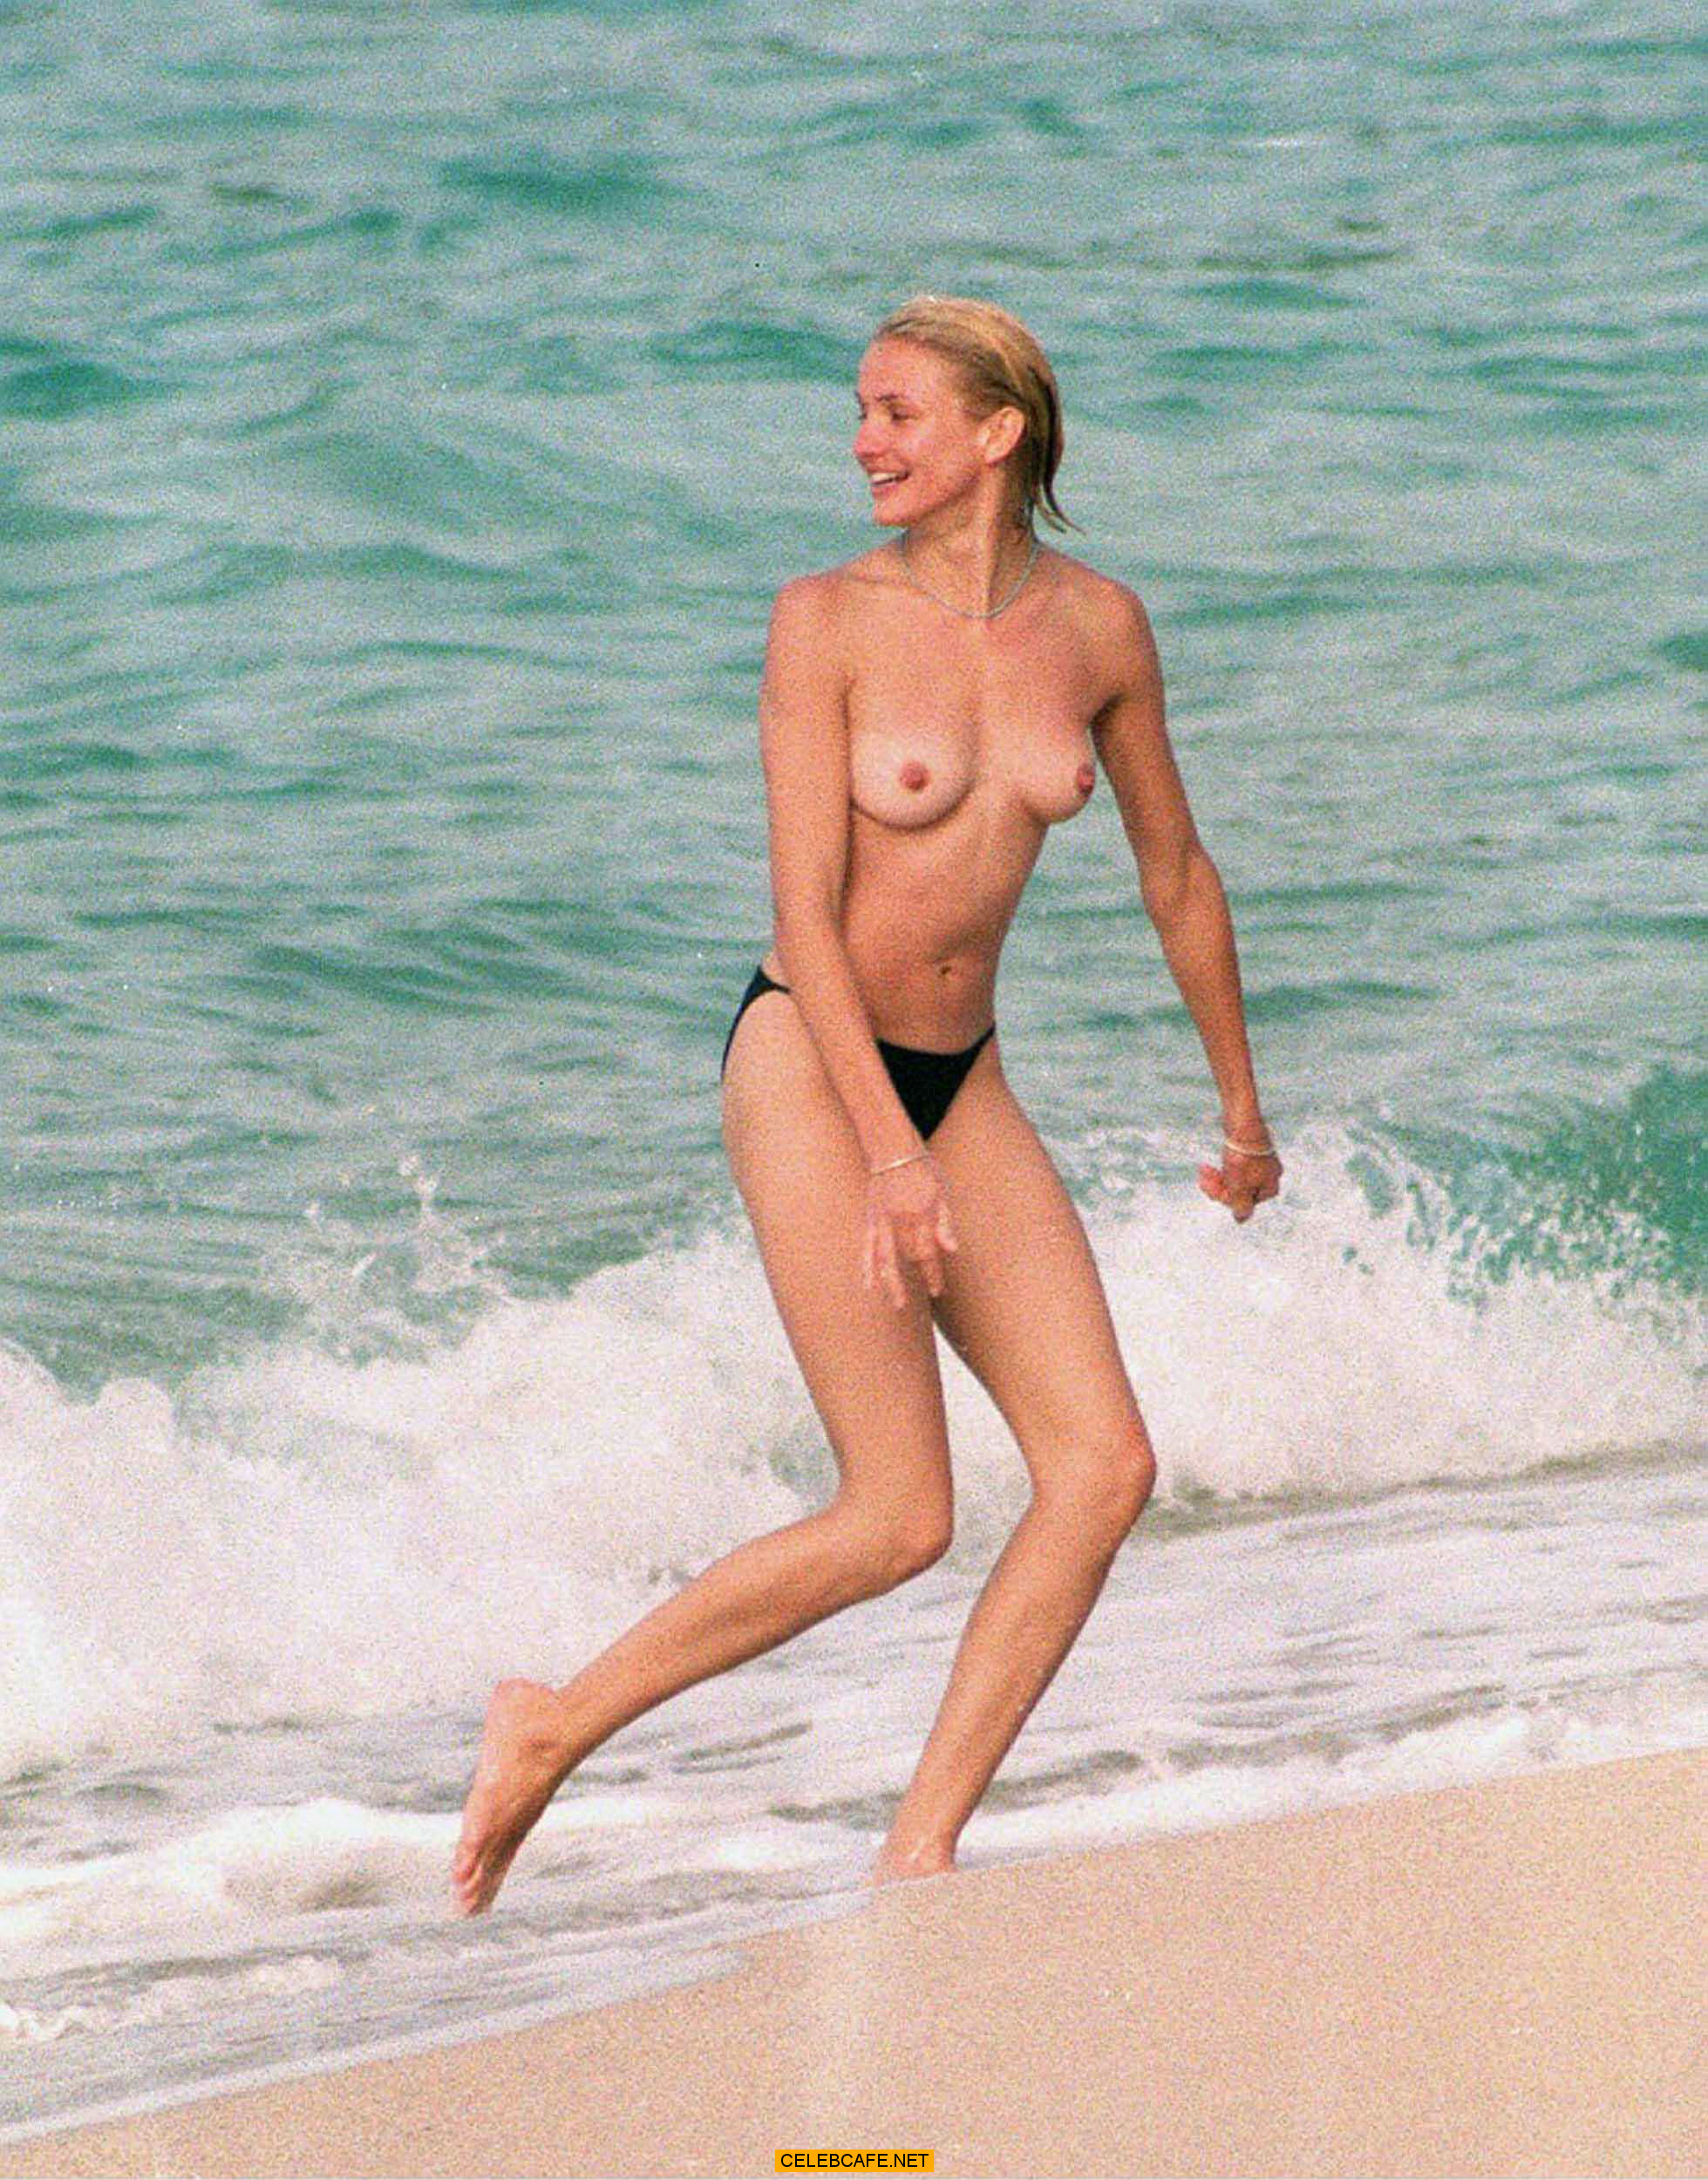 Topless Cameron Diaz nude photos 2019